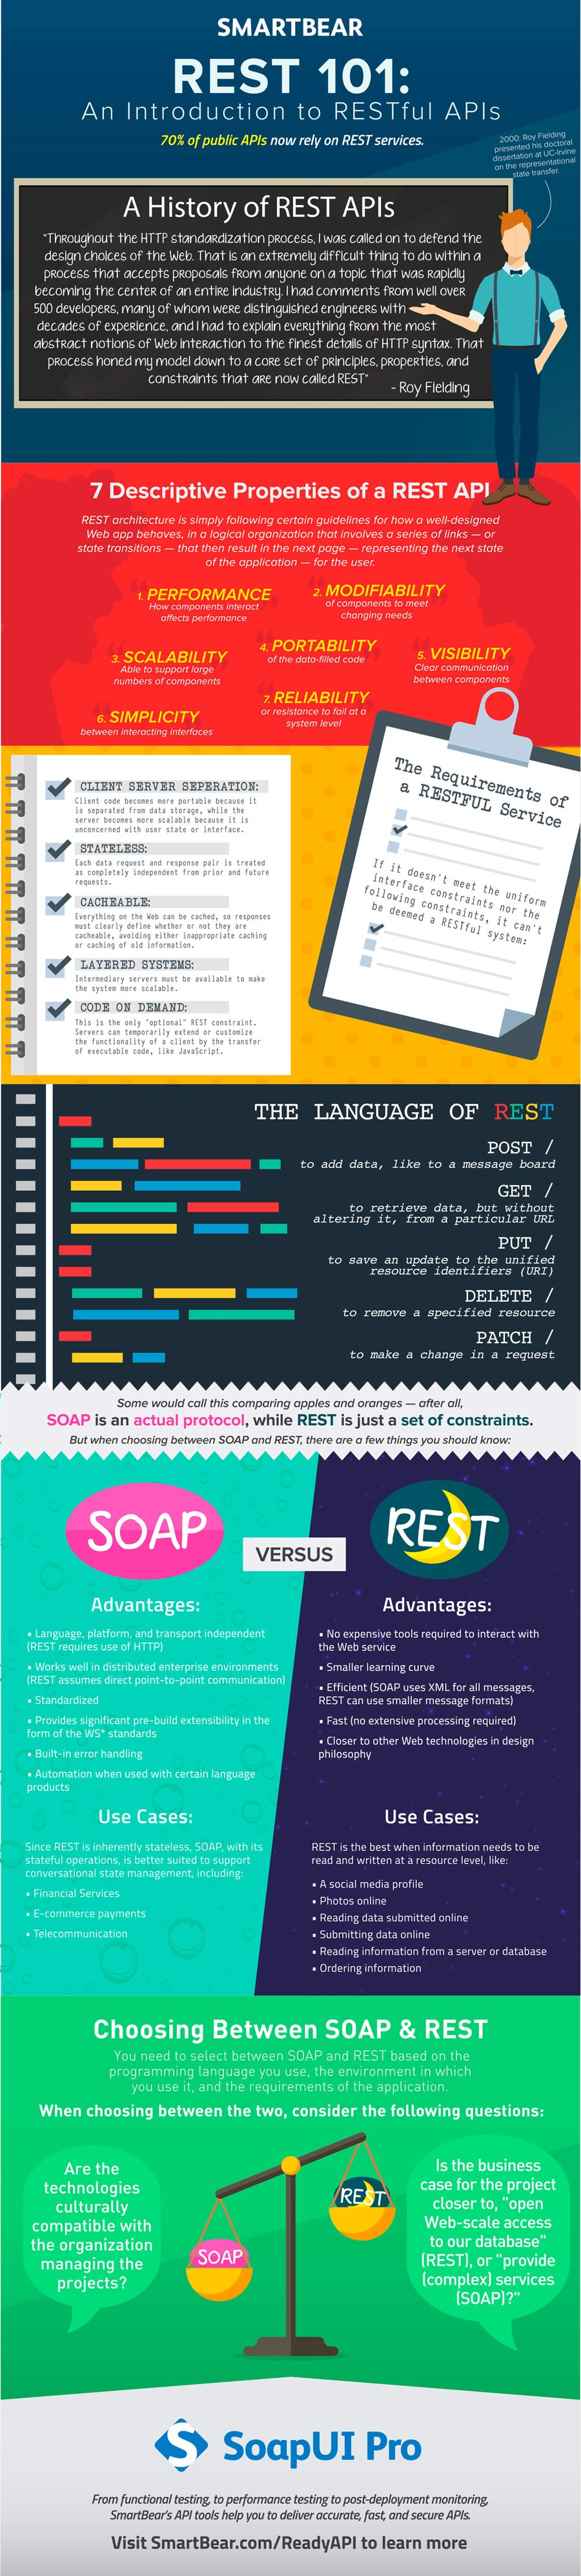 SoapUI-Pro_REST_infographic.jpg